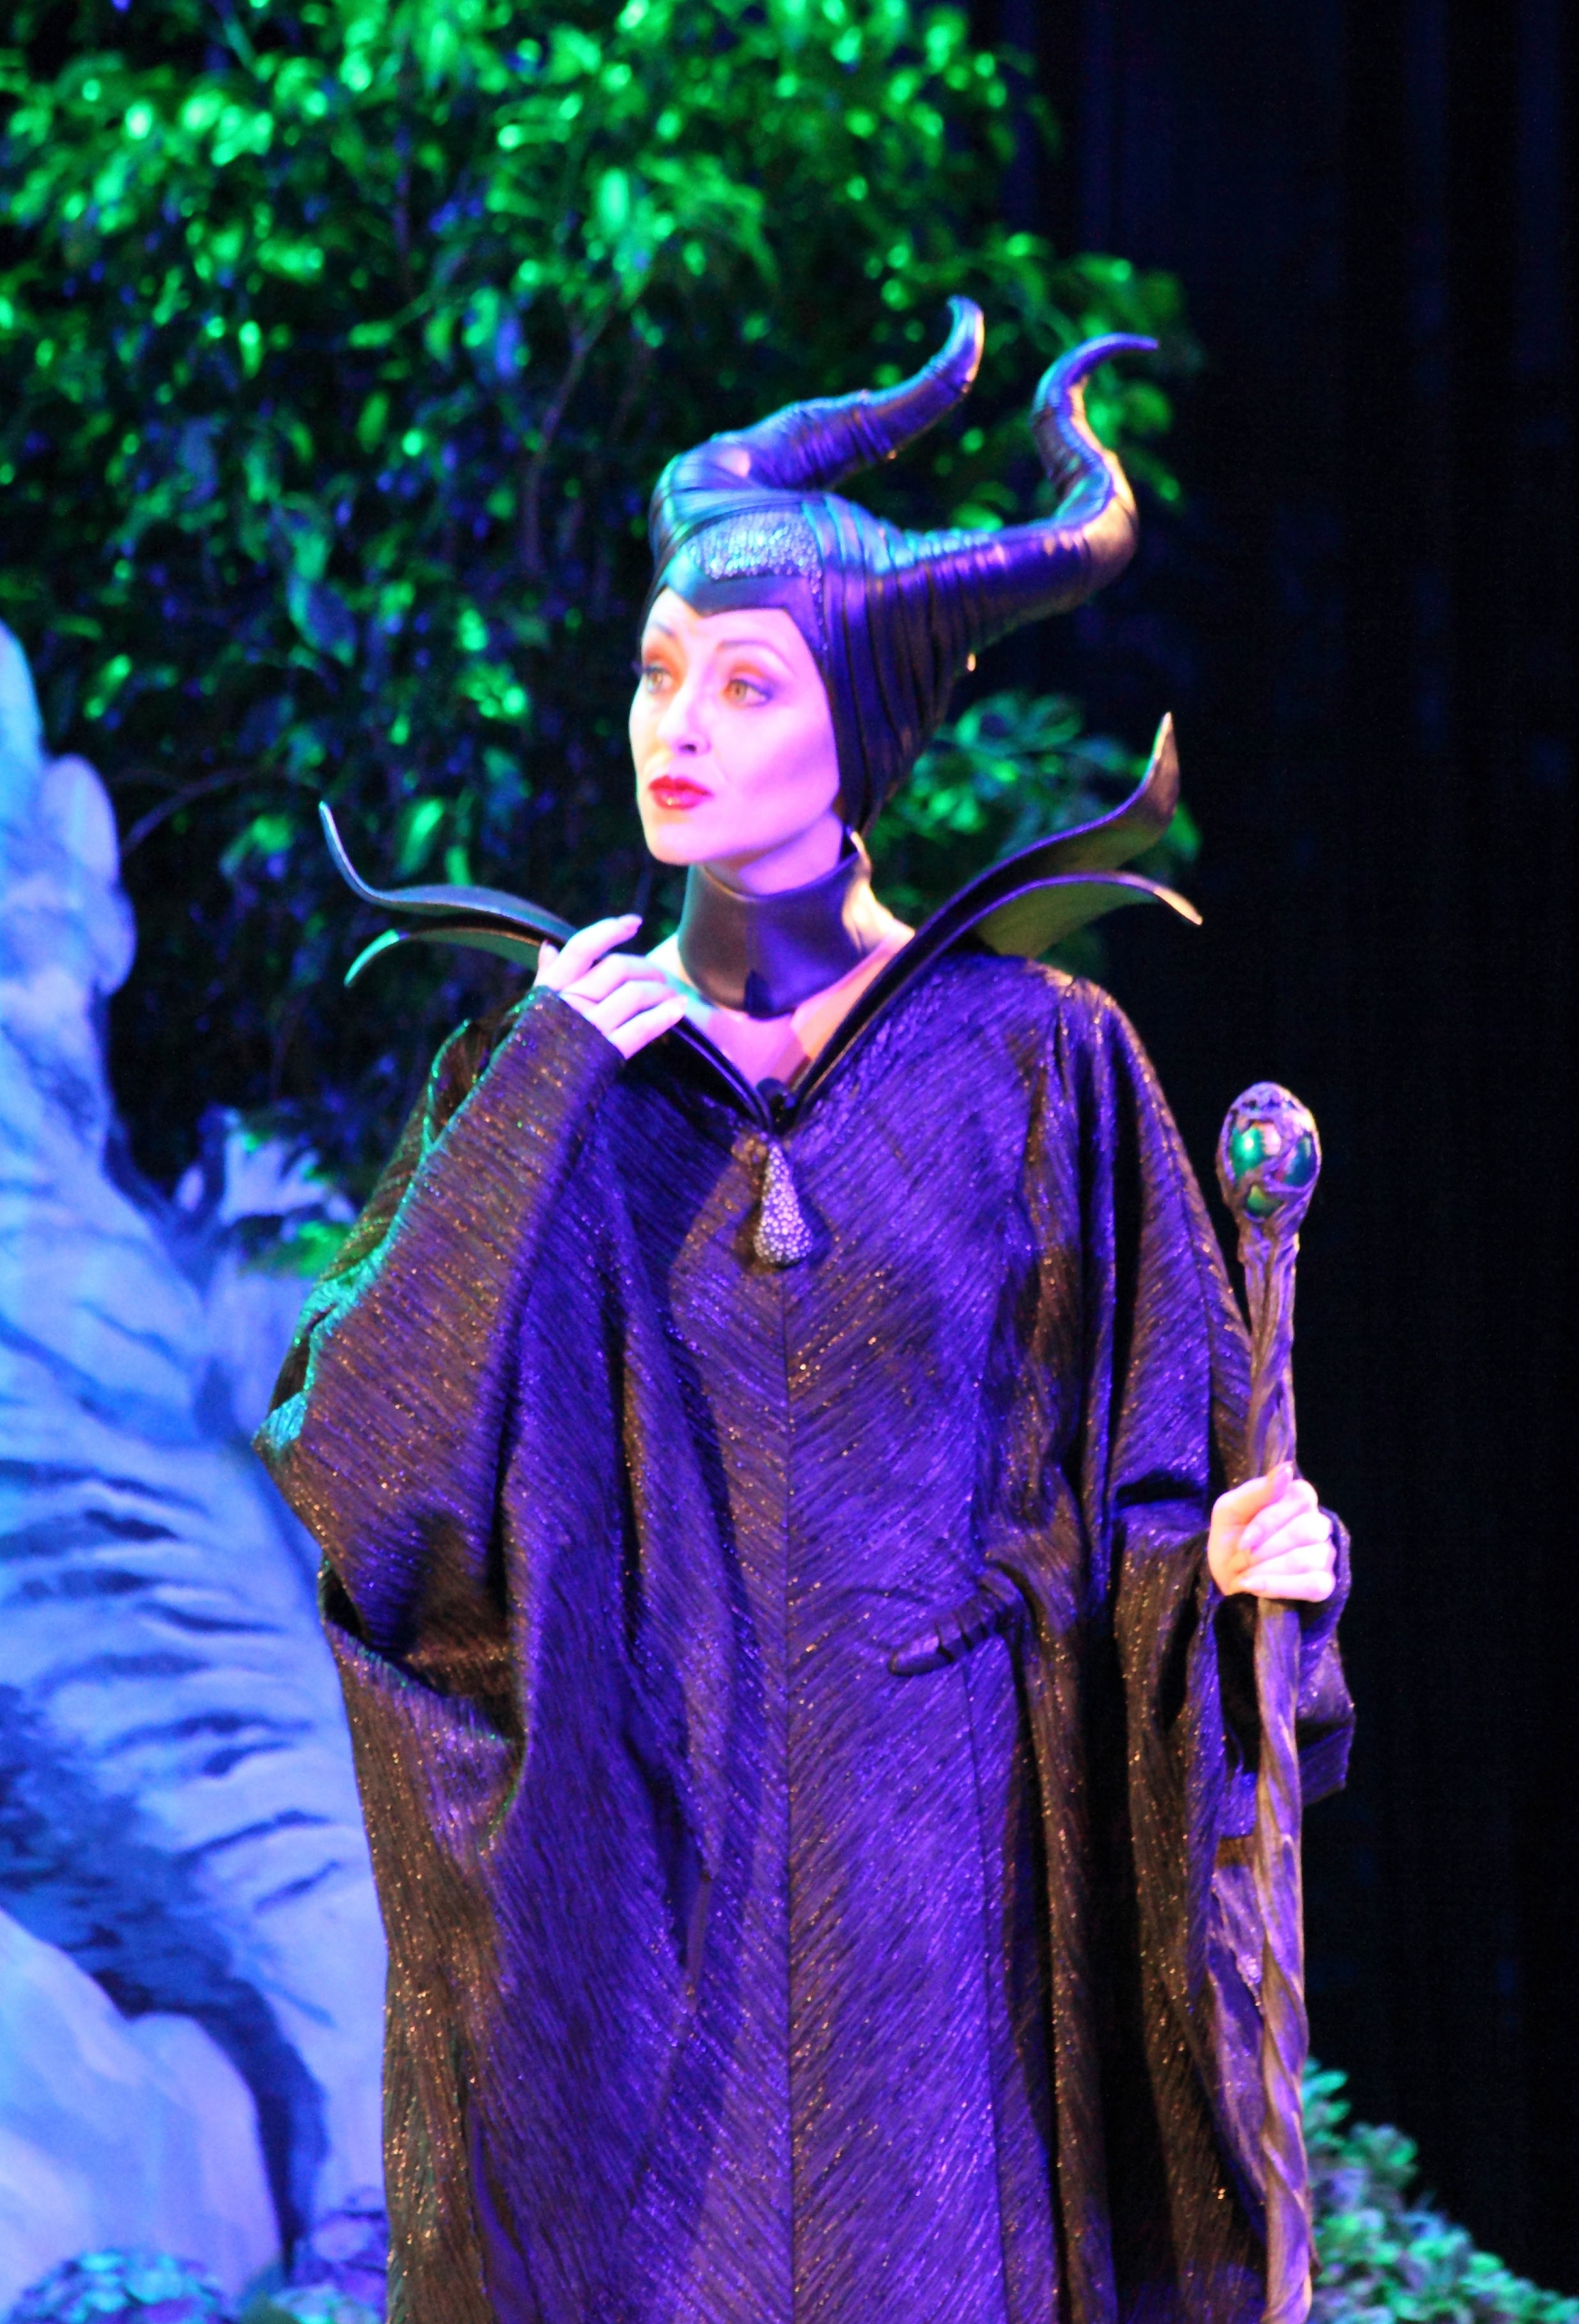 Angelina-Jolie-Maleficent Here is another view I am also